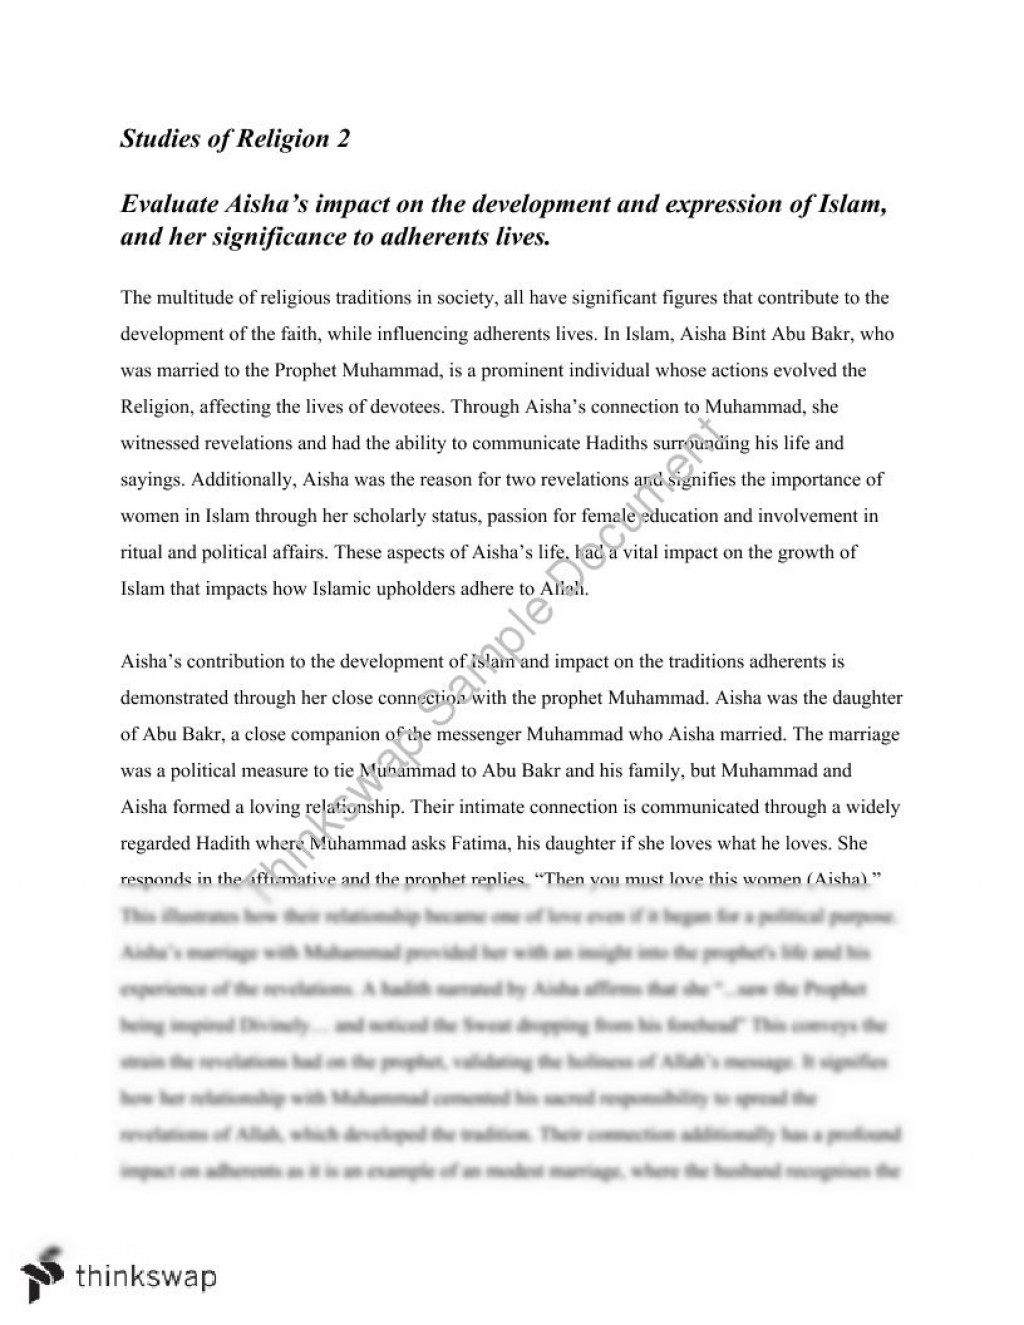 002 71449 Aisha Fadded41 Religion Essay Formidable Sociology Of Questions Paper Ideas Introduction Large